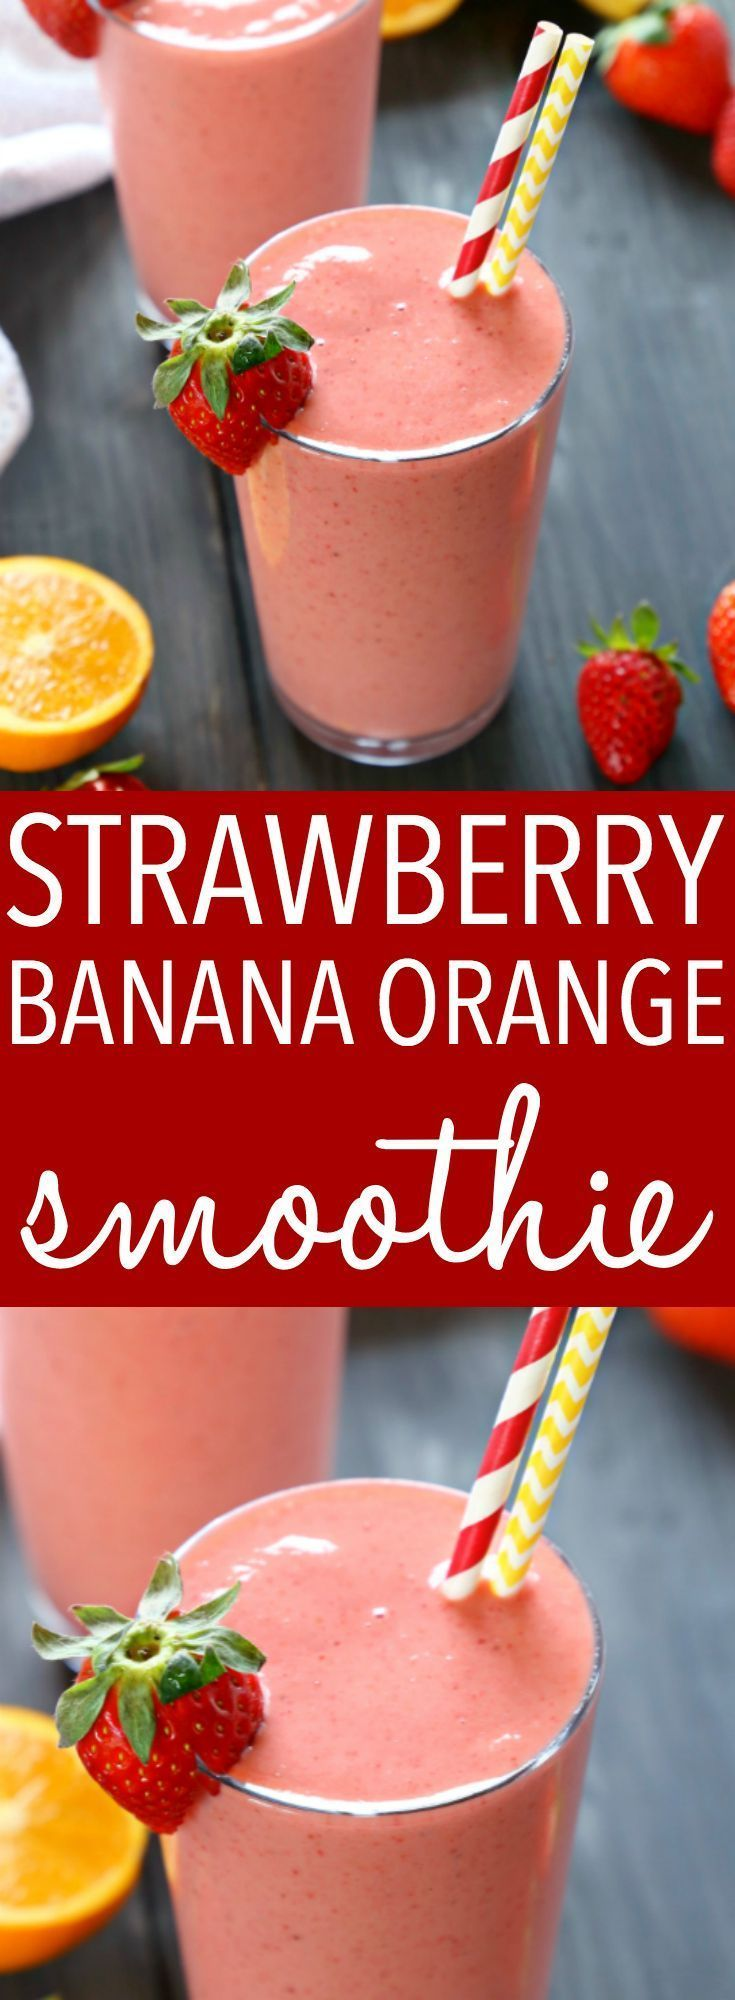 This Strawberry Banana Orange Power Smoothie is the perfect fruit smoothie packe...  - SMOOTHIES - #banana #Fruit #orange #packe #perfect #power #smoothie #smoothies #strawberry #fruitsmoothie